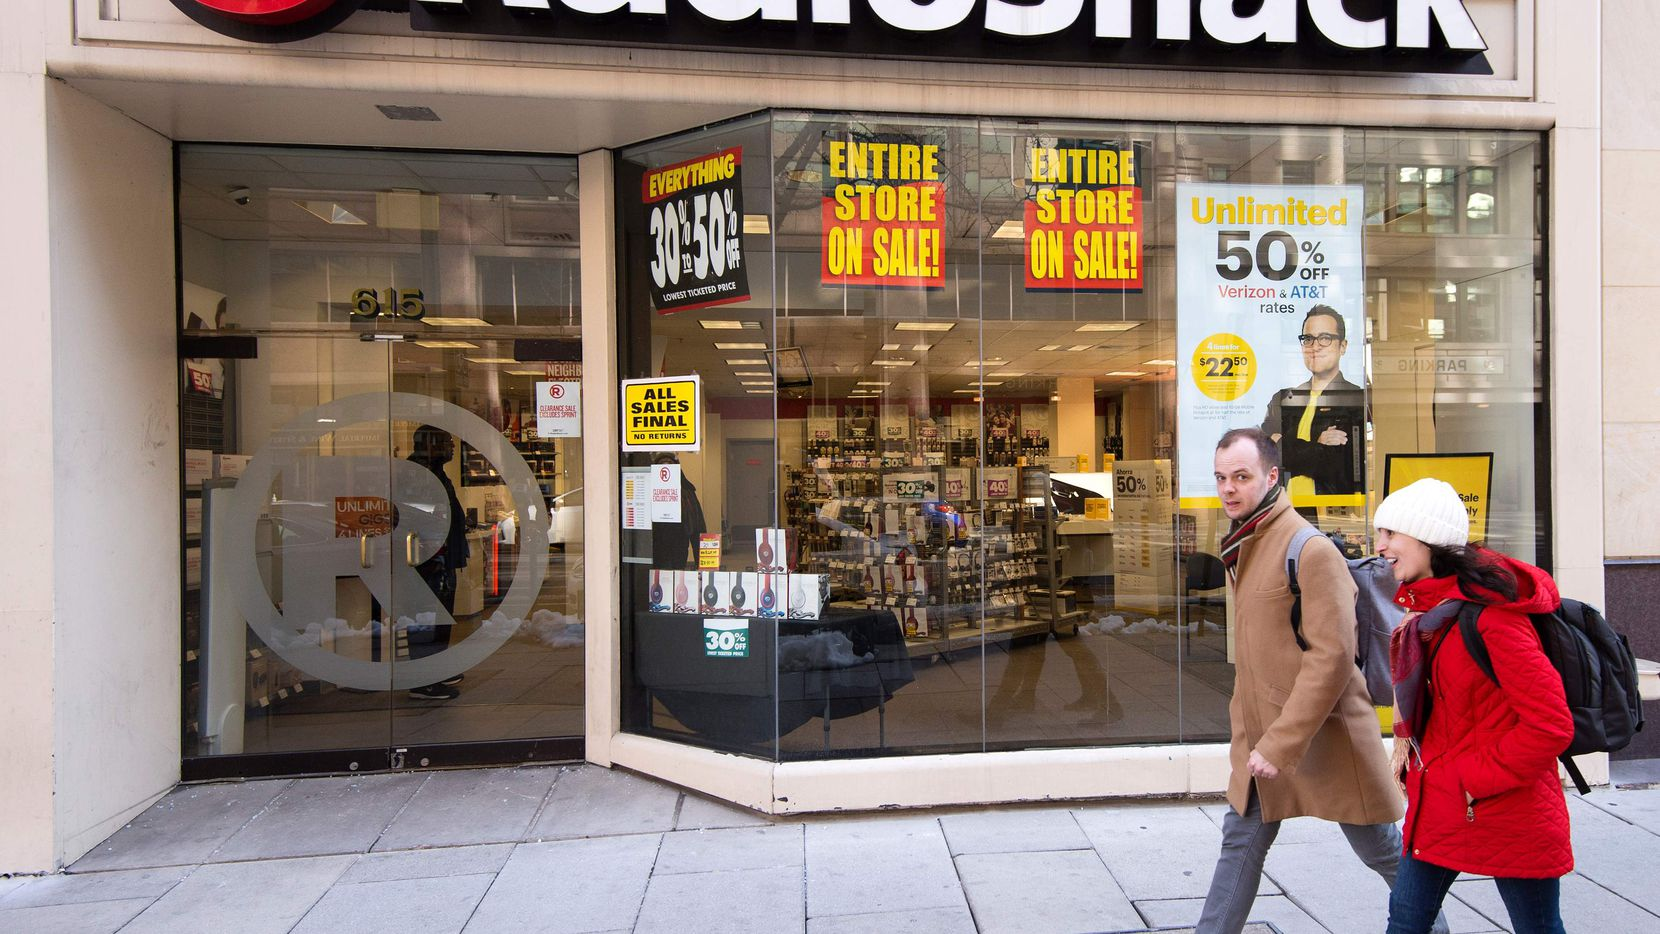 People walk past the Radio Shack in downtown Washington, DC, March 16, 2017, one of the 365 locations that Radio Shack intends to close by early April due to their second chapter 11 bankruptcy case in two years. / AFP PHOTO / PAUL J. RICHARDSPAUL J. RICHARDS/AFP/Getty Images